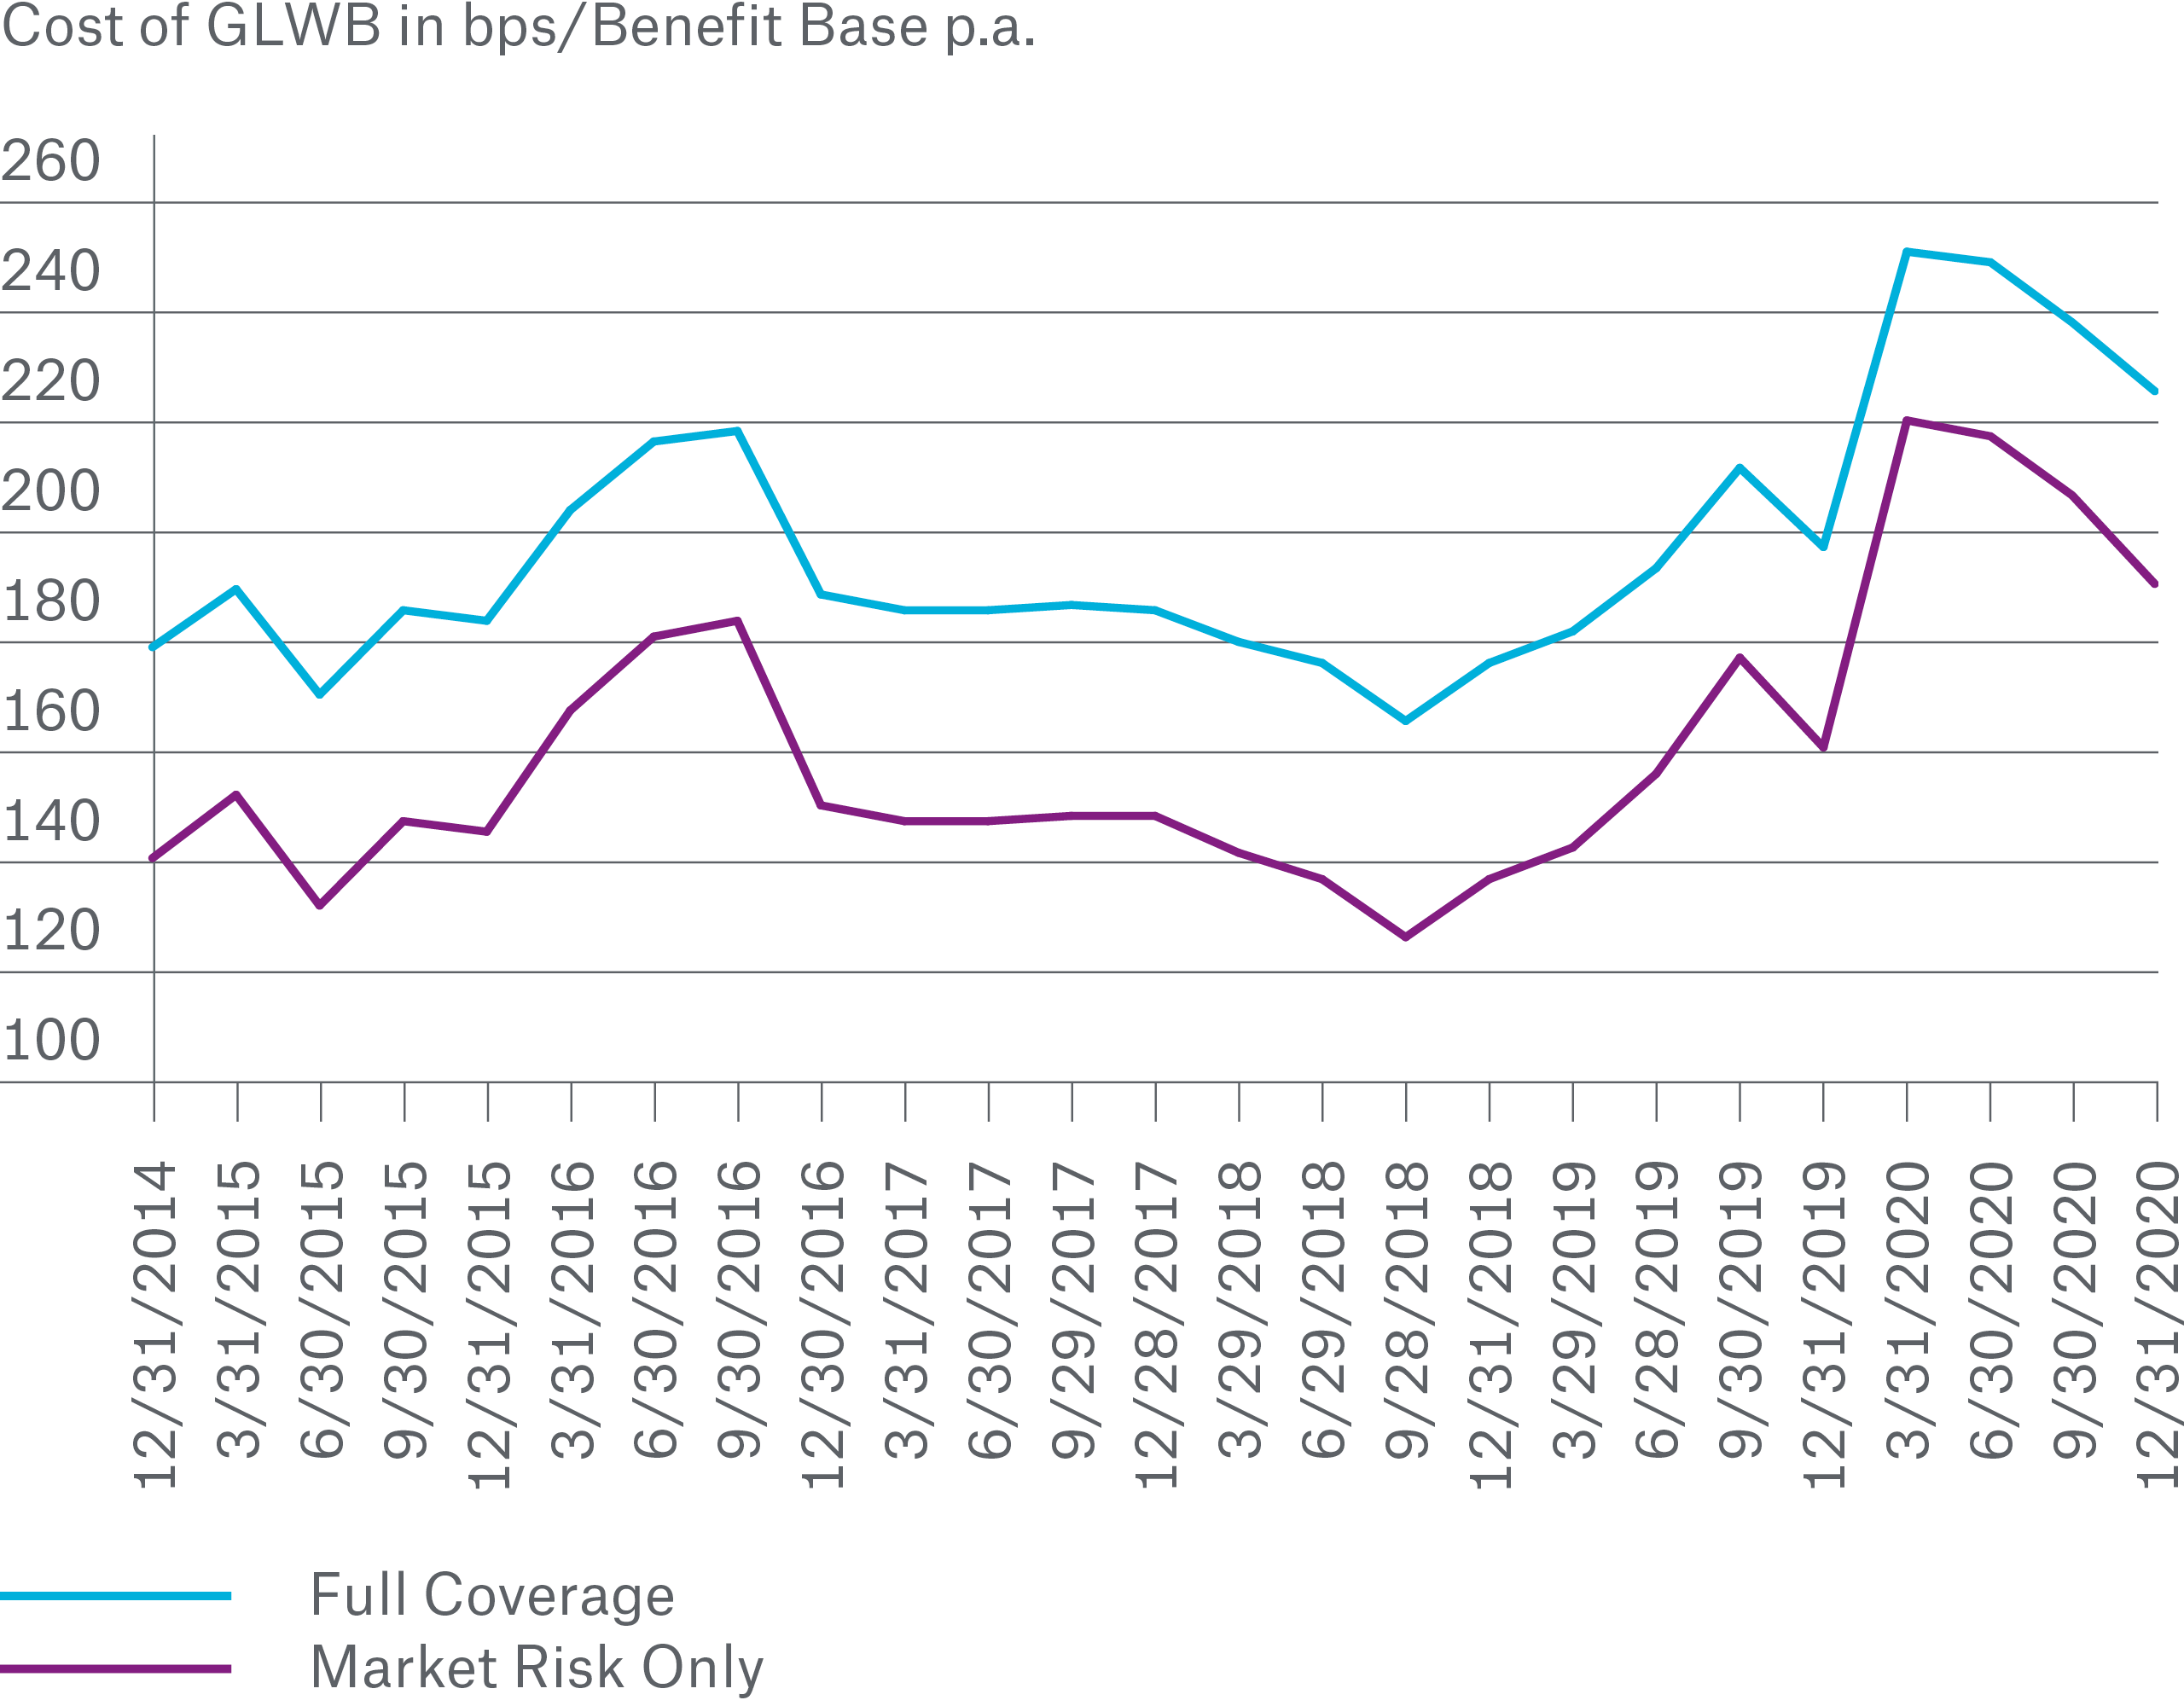 Cost of GLWB in bps/Benefit Base p.a.